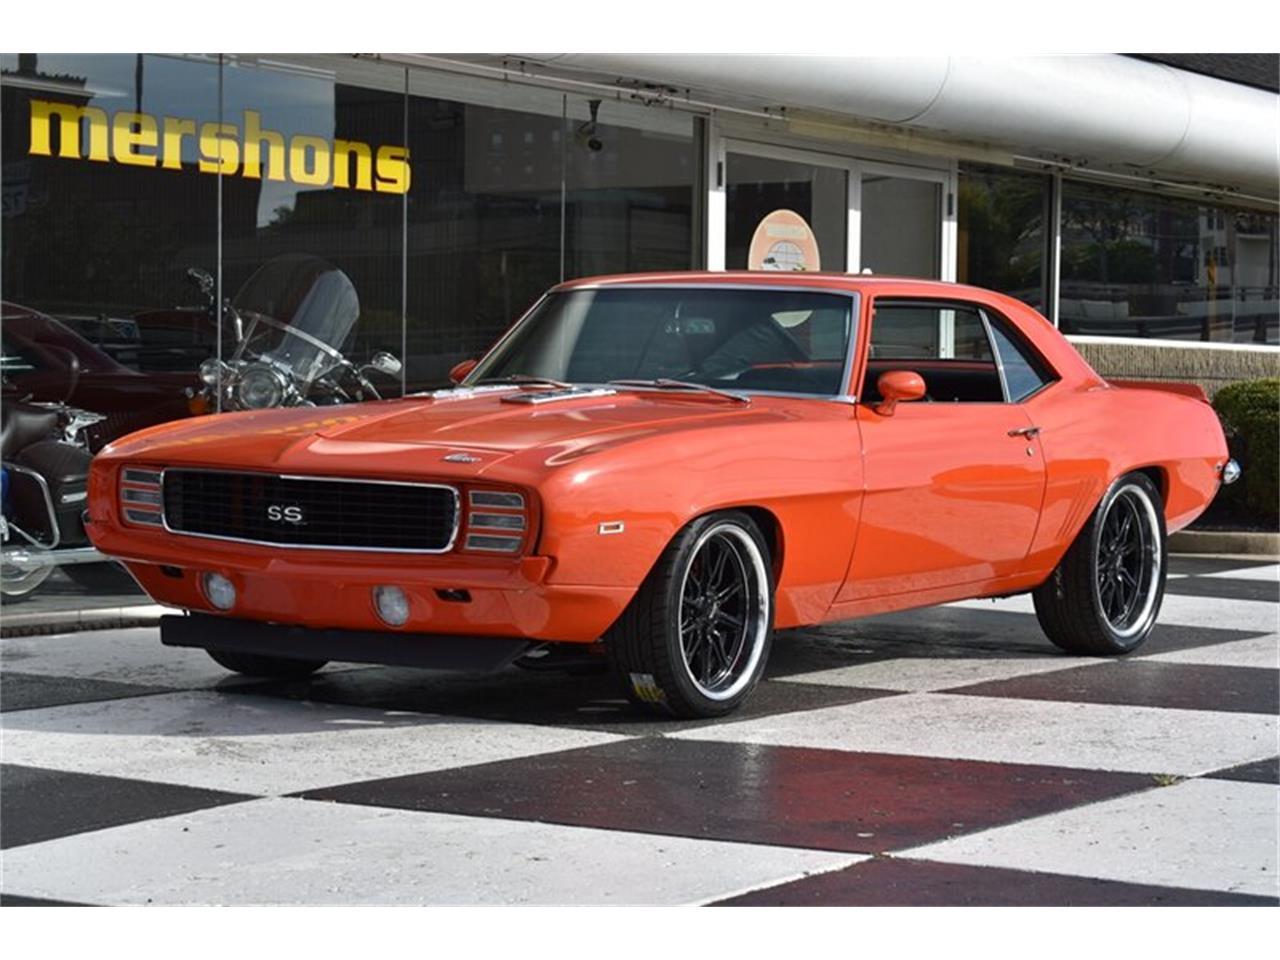 for sale 1969 chevrolet camaro in springfield, ohio cars - springfield, oh at geebo